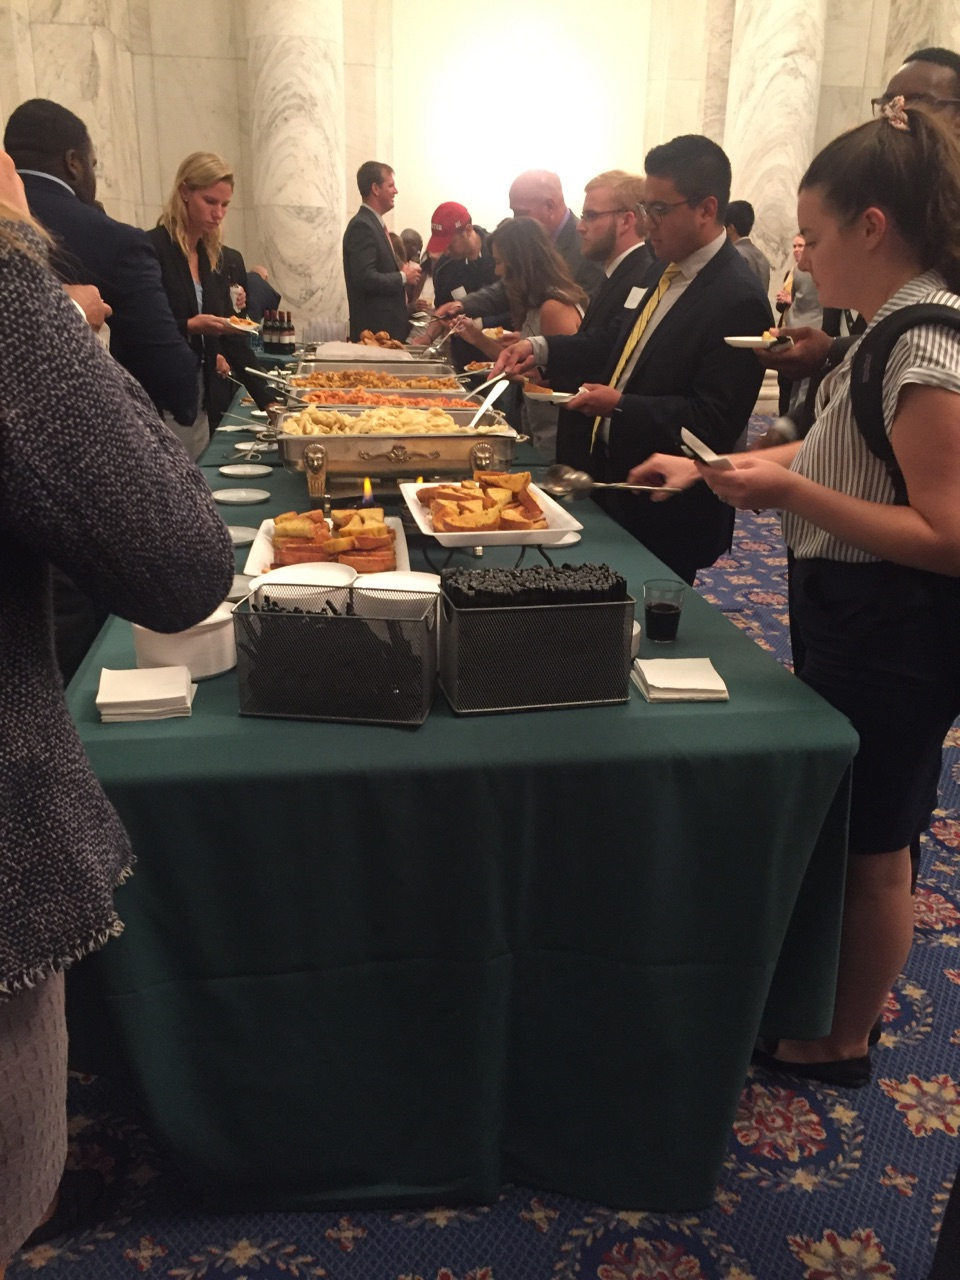 Pasta for everyone at the Soy Reception. (Alex Gangitano/ CQ Roll Call)